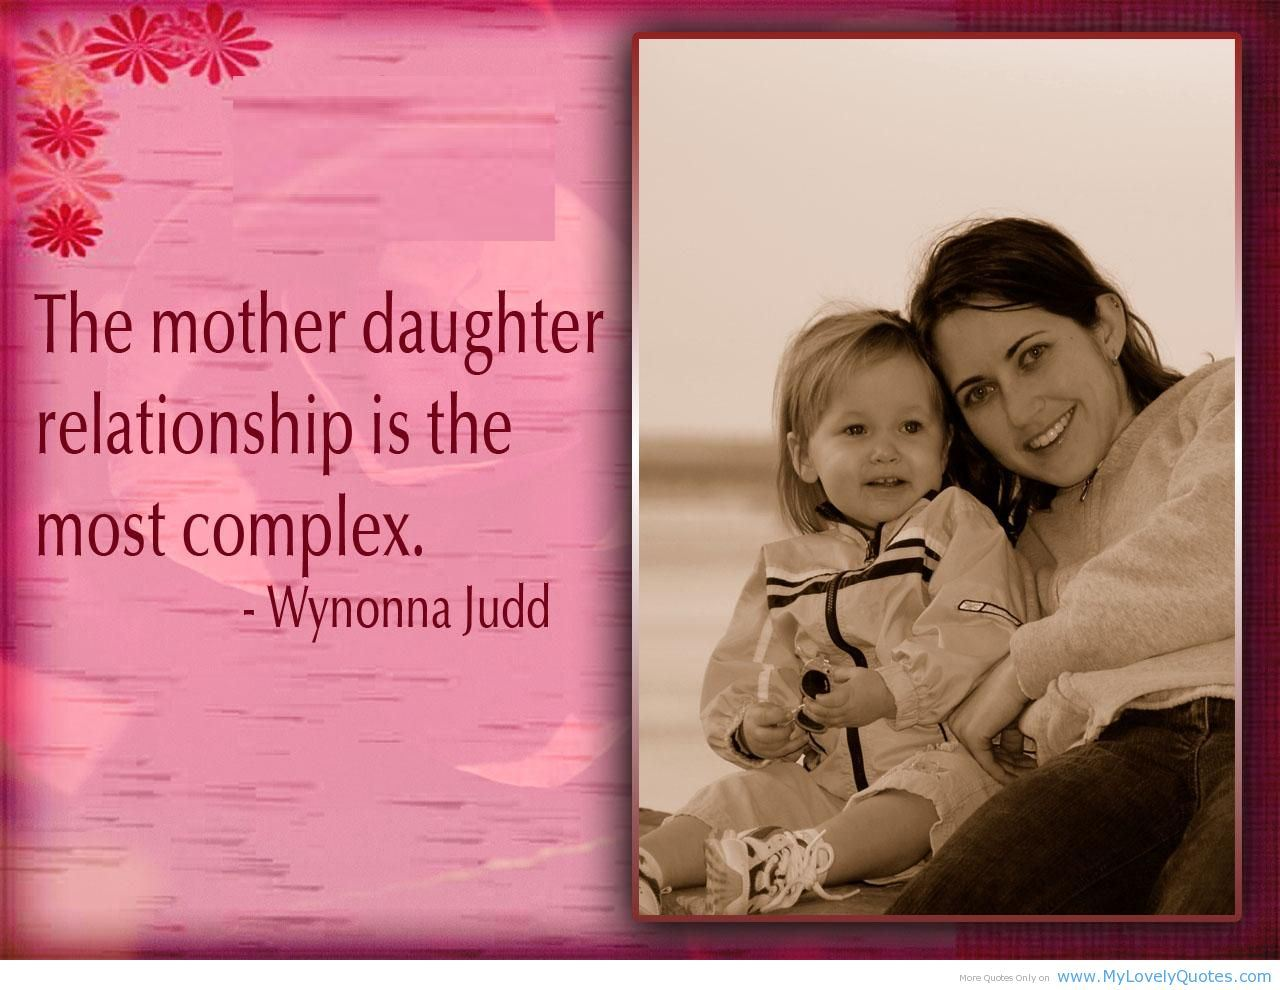 valentine day quotes for daughters inspirational quotation for daughter on this valentine 2018 - Valentines Day Quotes For Daughters